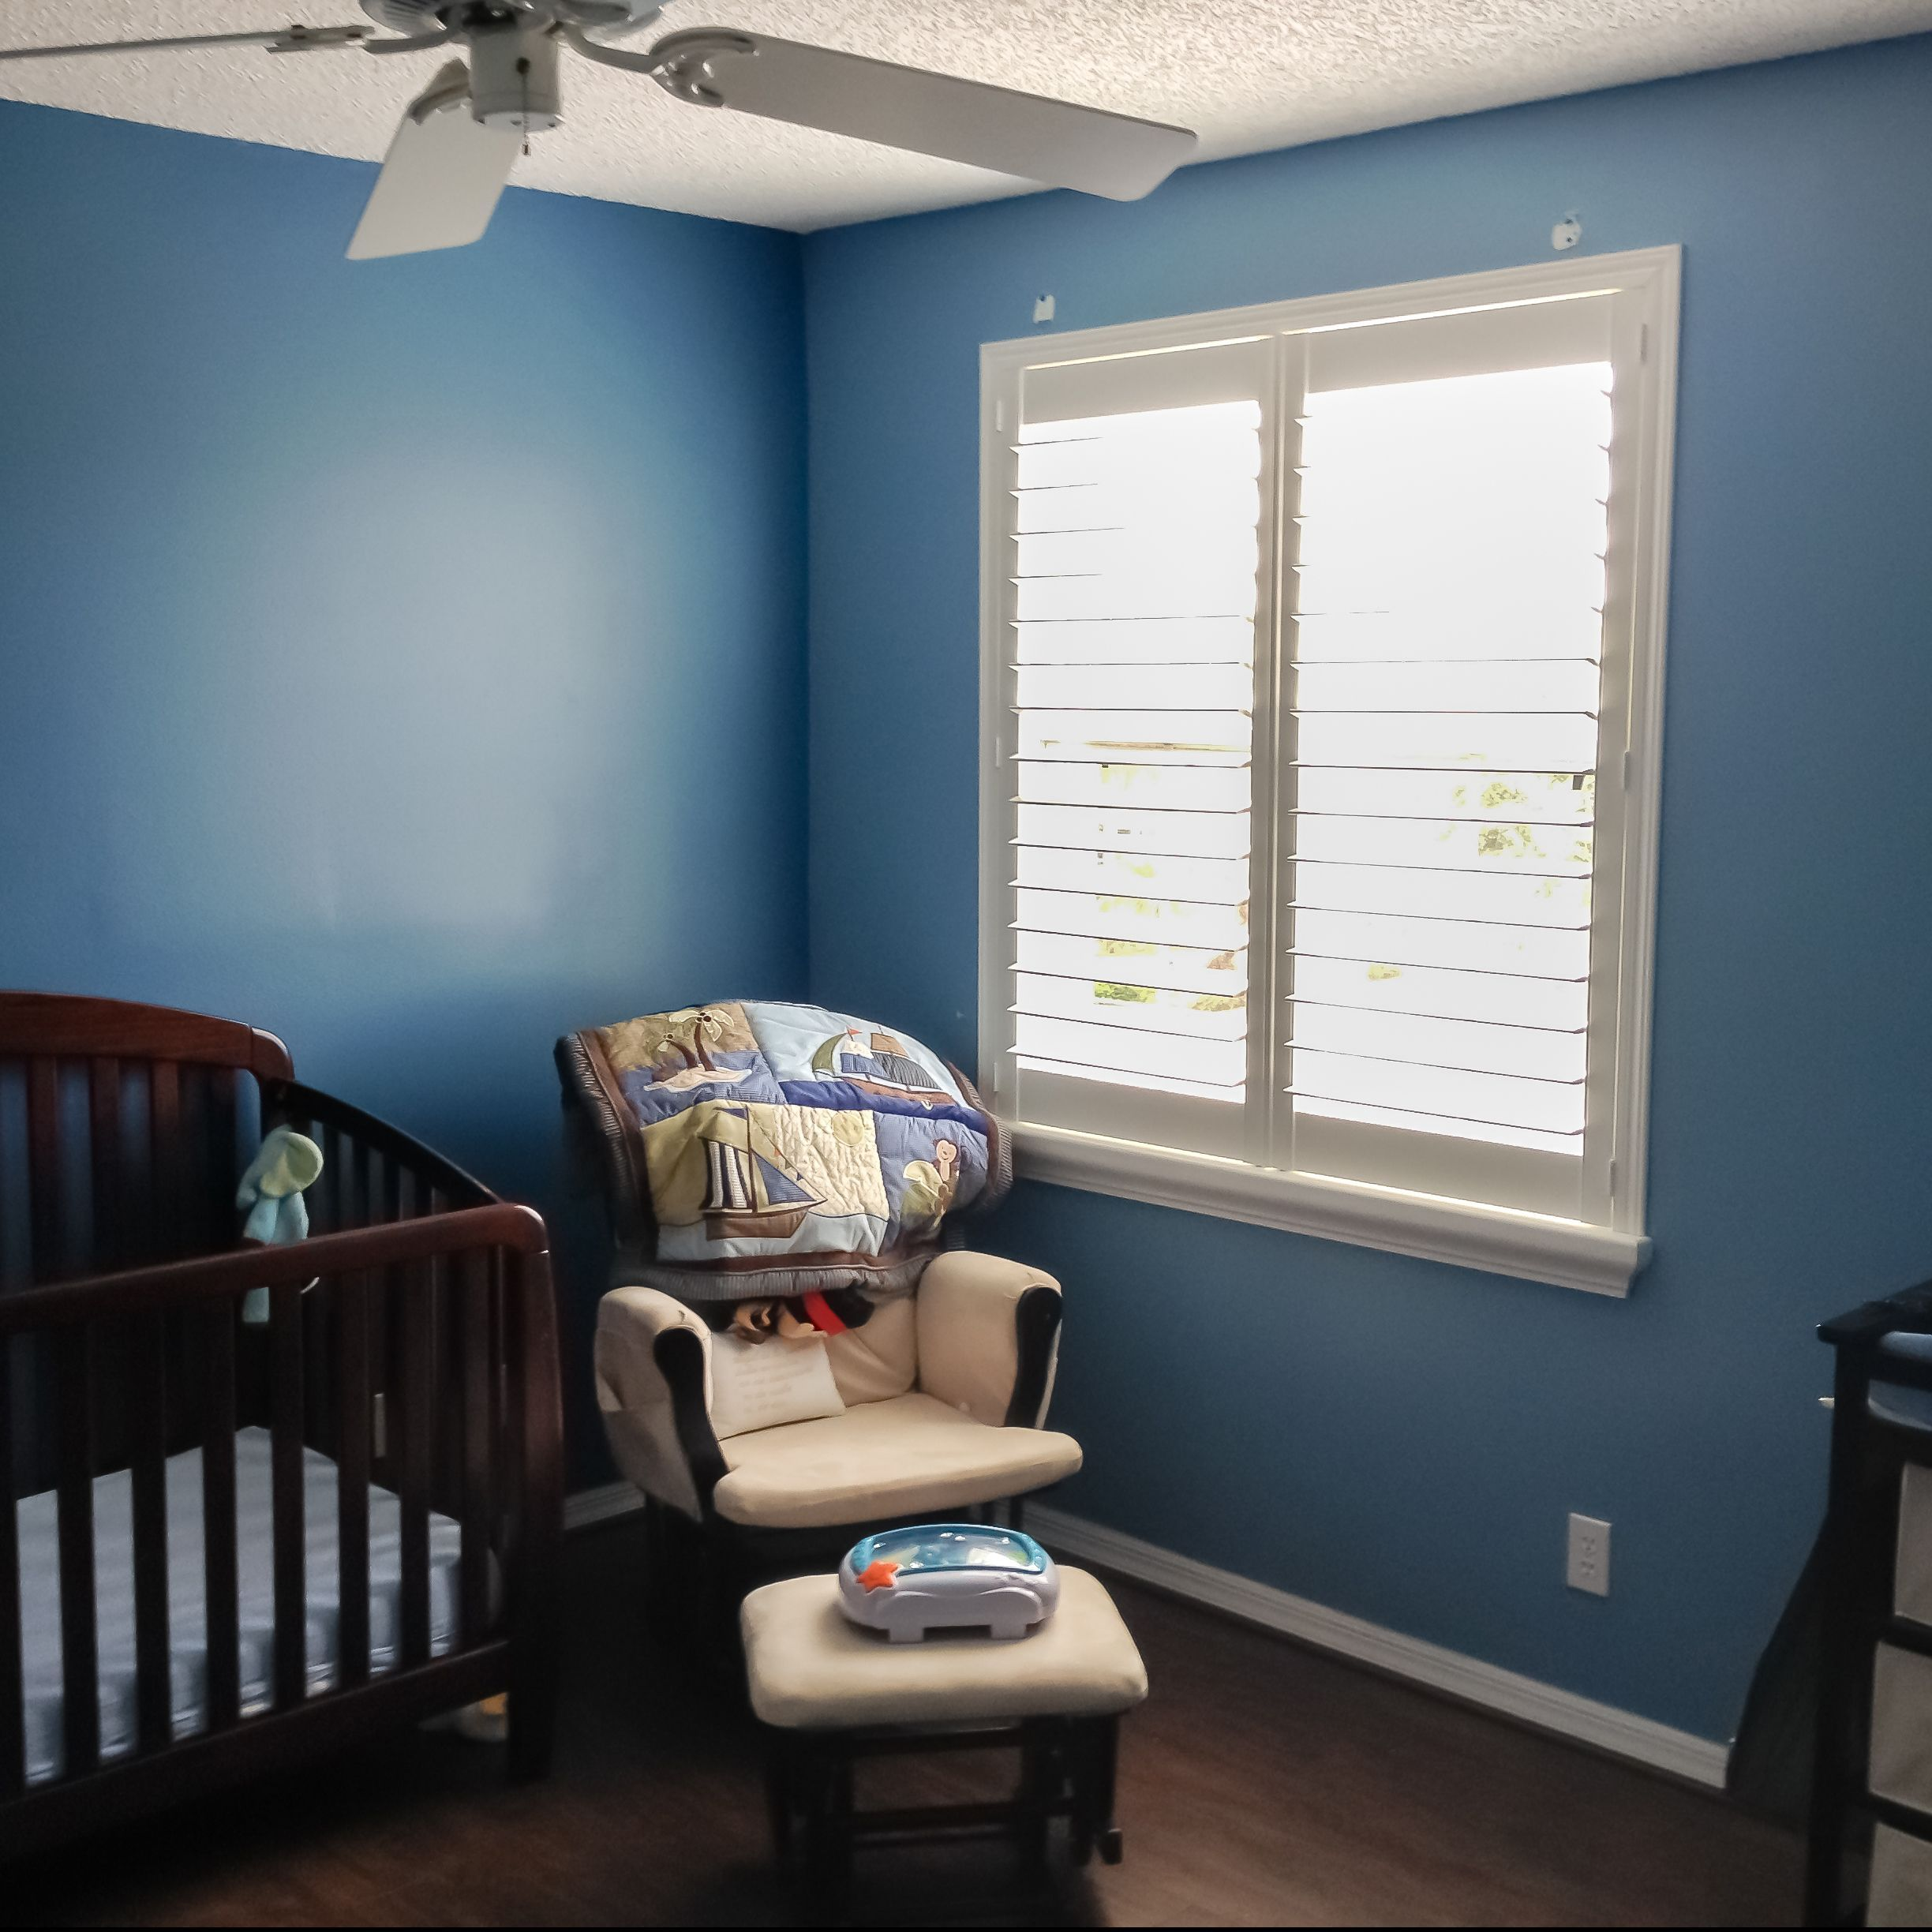 Plantation Shutters are a fabulous option for a nursery. This is a finished project in a Pemproke Pines residence. #blindsshadesandshutters #myblindstoday #windowtreatment #miami #homedecor #homedecormiami #interiordesign #condoliving #luxury #luxuryliving  #miamiliving #home #miamicondos #shutters #miamibest